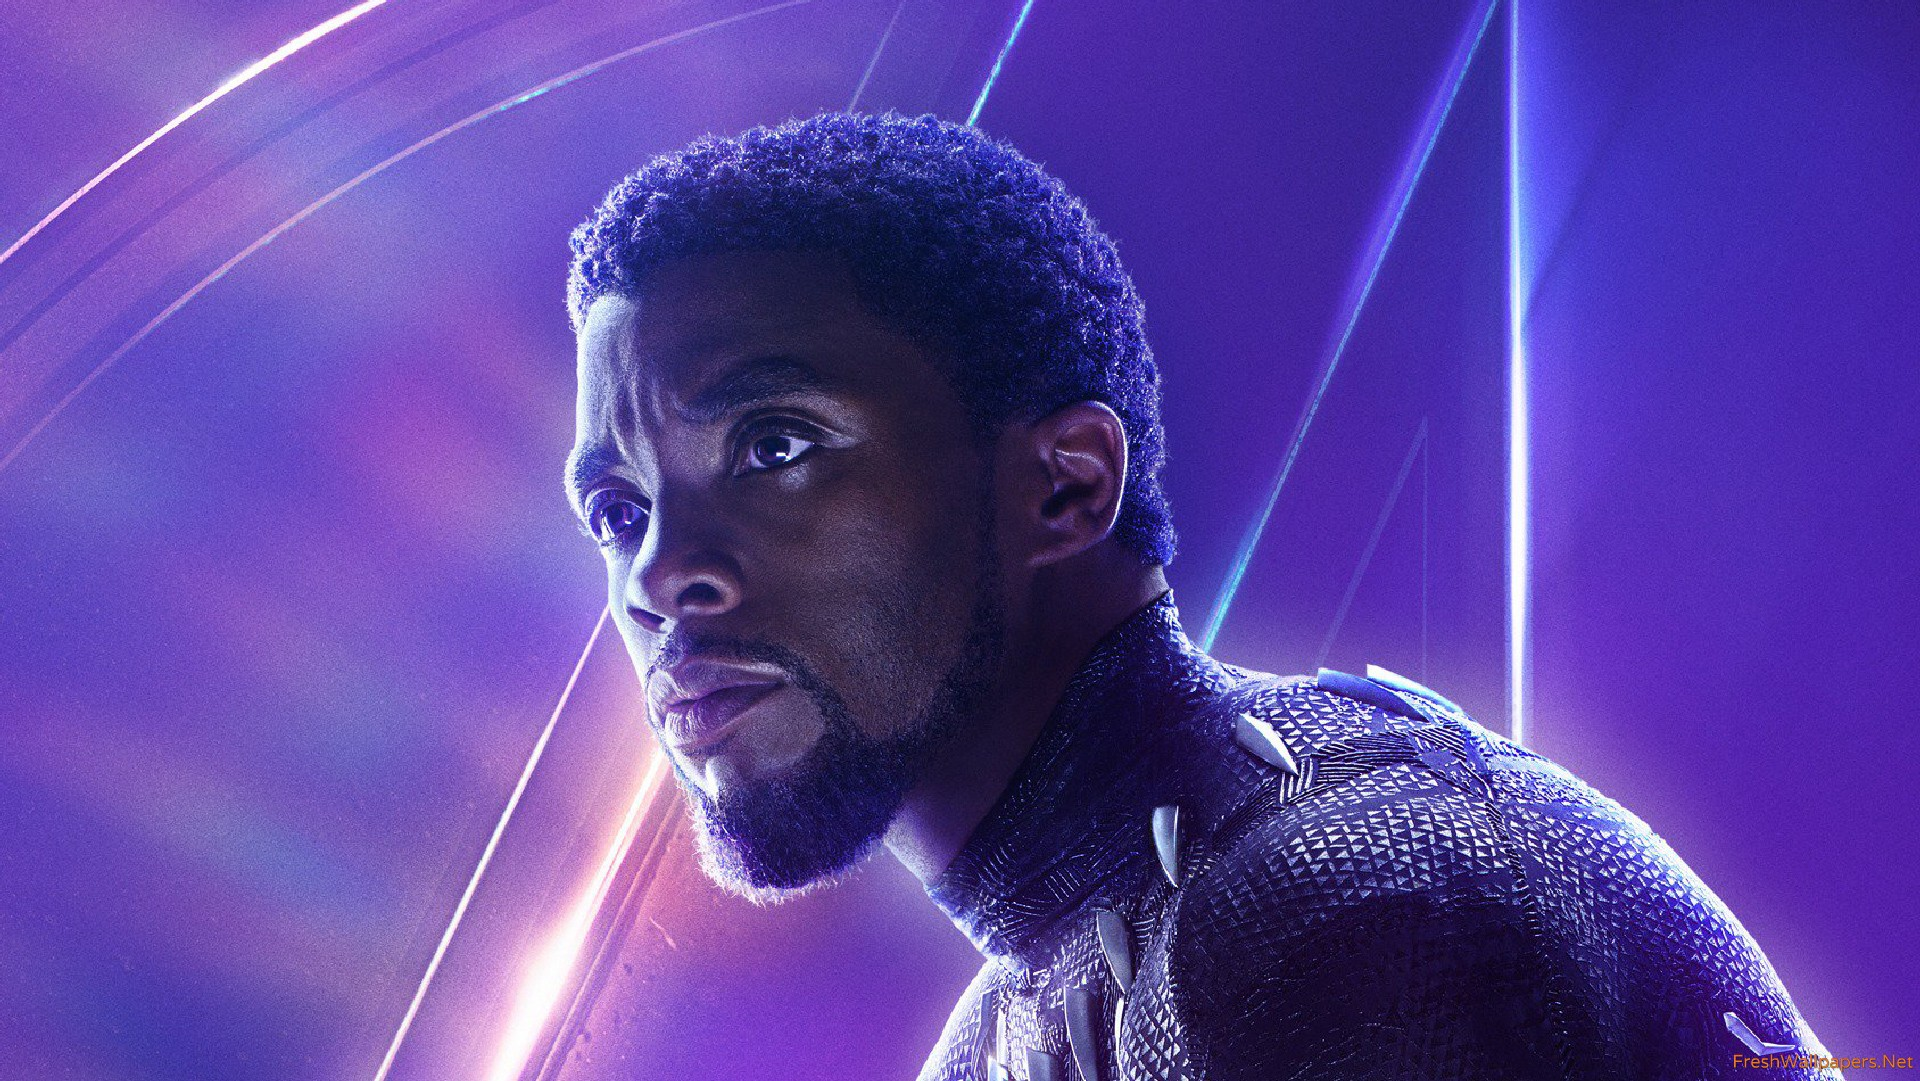 Black Panther In Avengers Infinity War New Poster Wallpaper Download